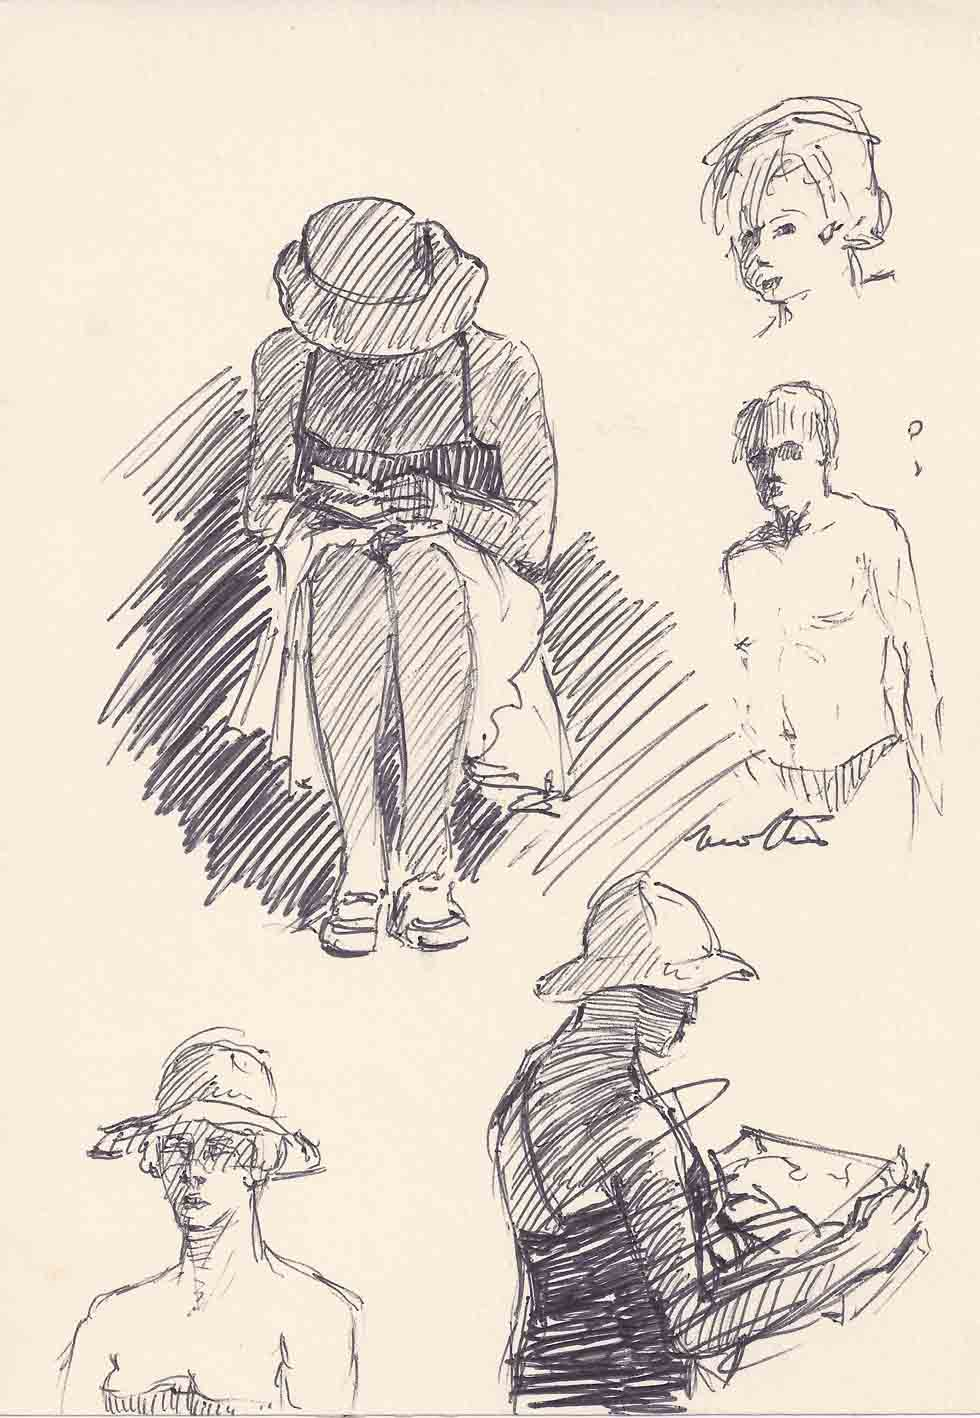 Sketches of people on beach